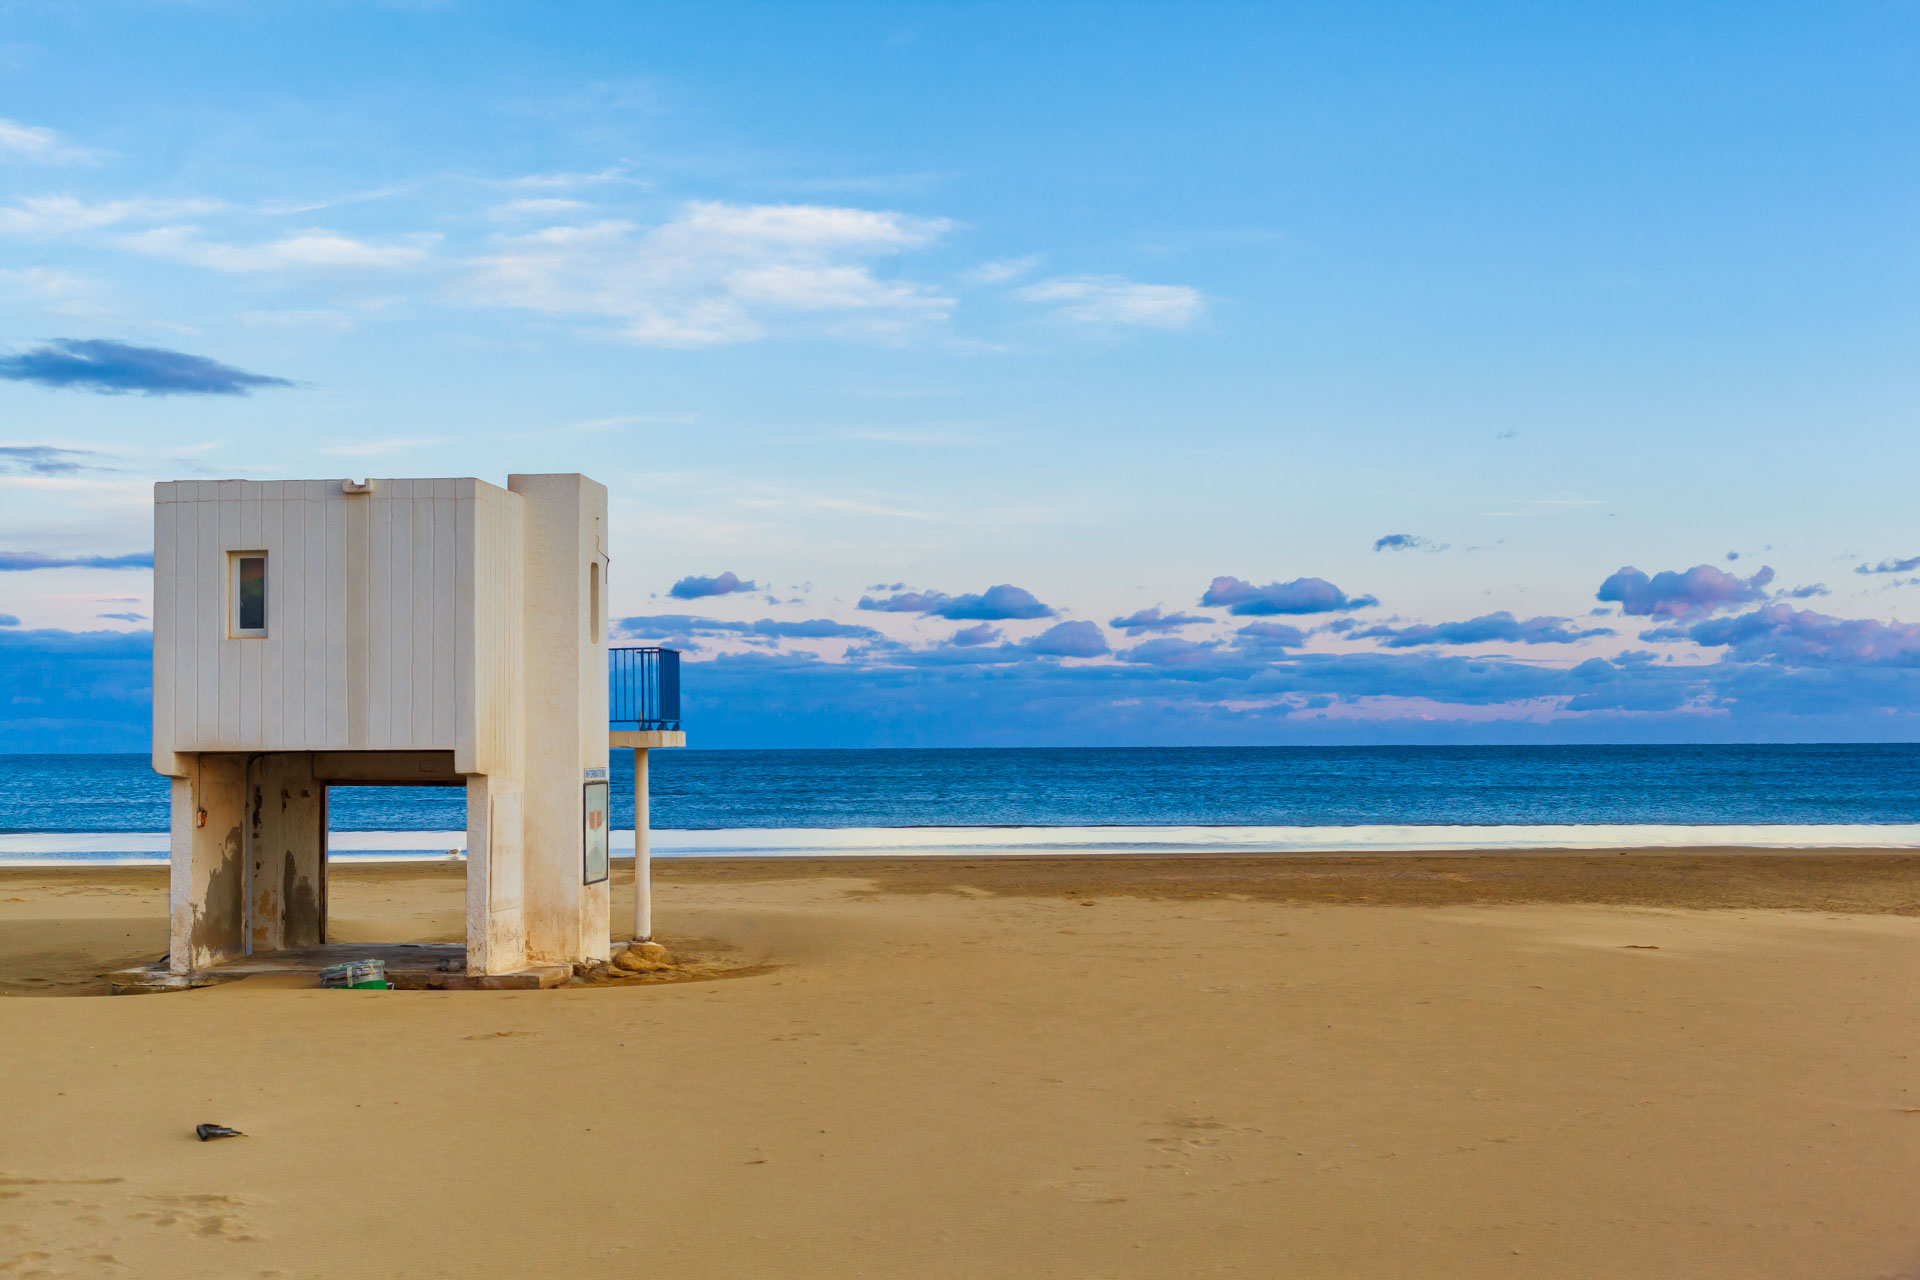 View on the Beach at Southern France